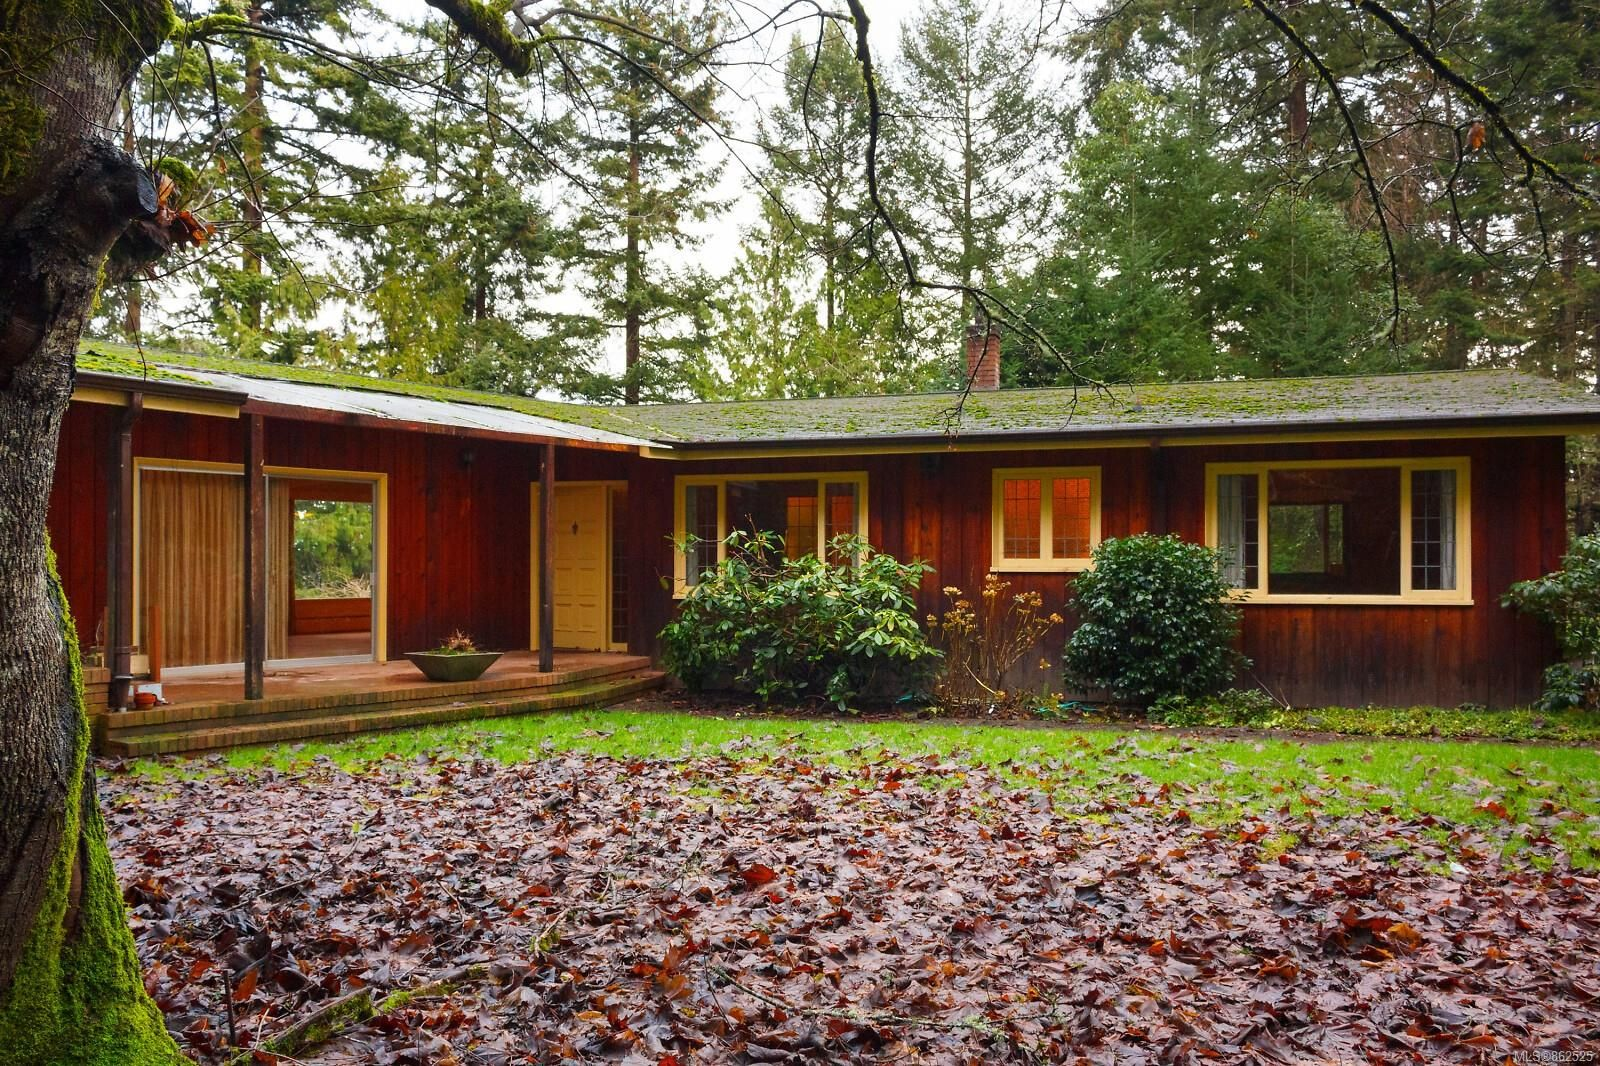 Main Photo: 10932 Inwood Rd in : NS Curteis Point House for sale (North Saanich)  : MLS®# 862525